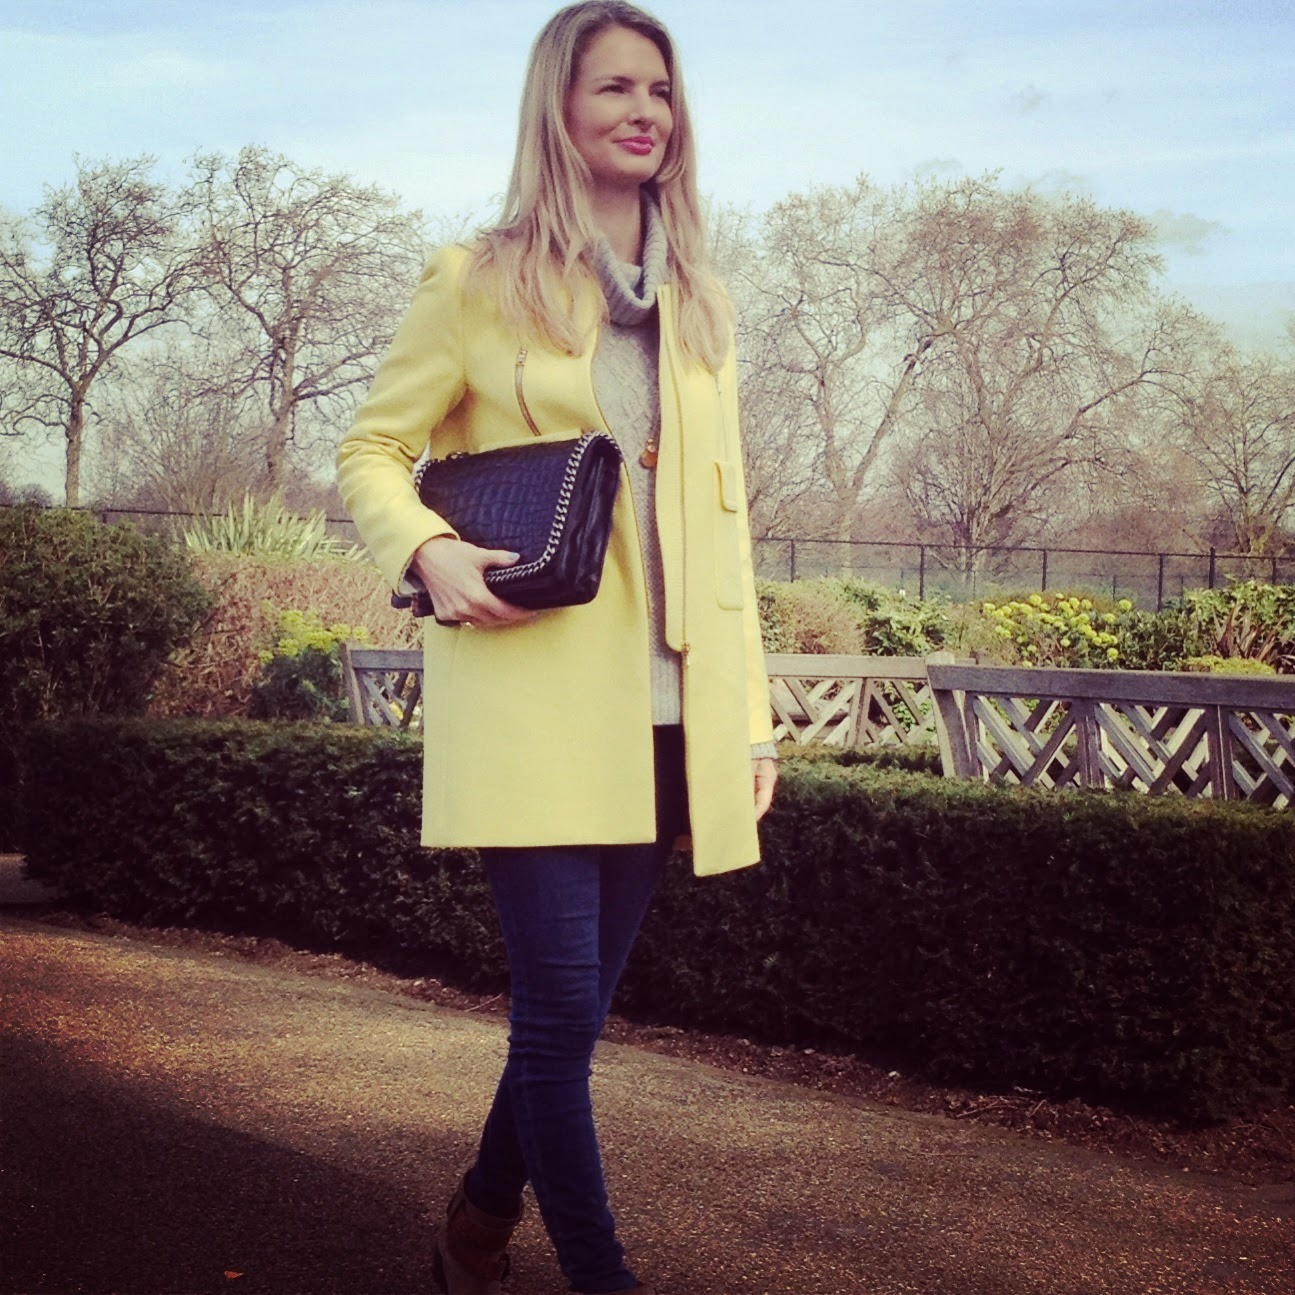 zara, zara coat, zara yellow coat, hyde park hyde park london